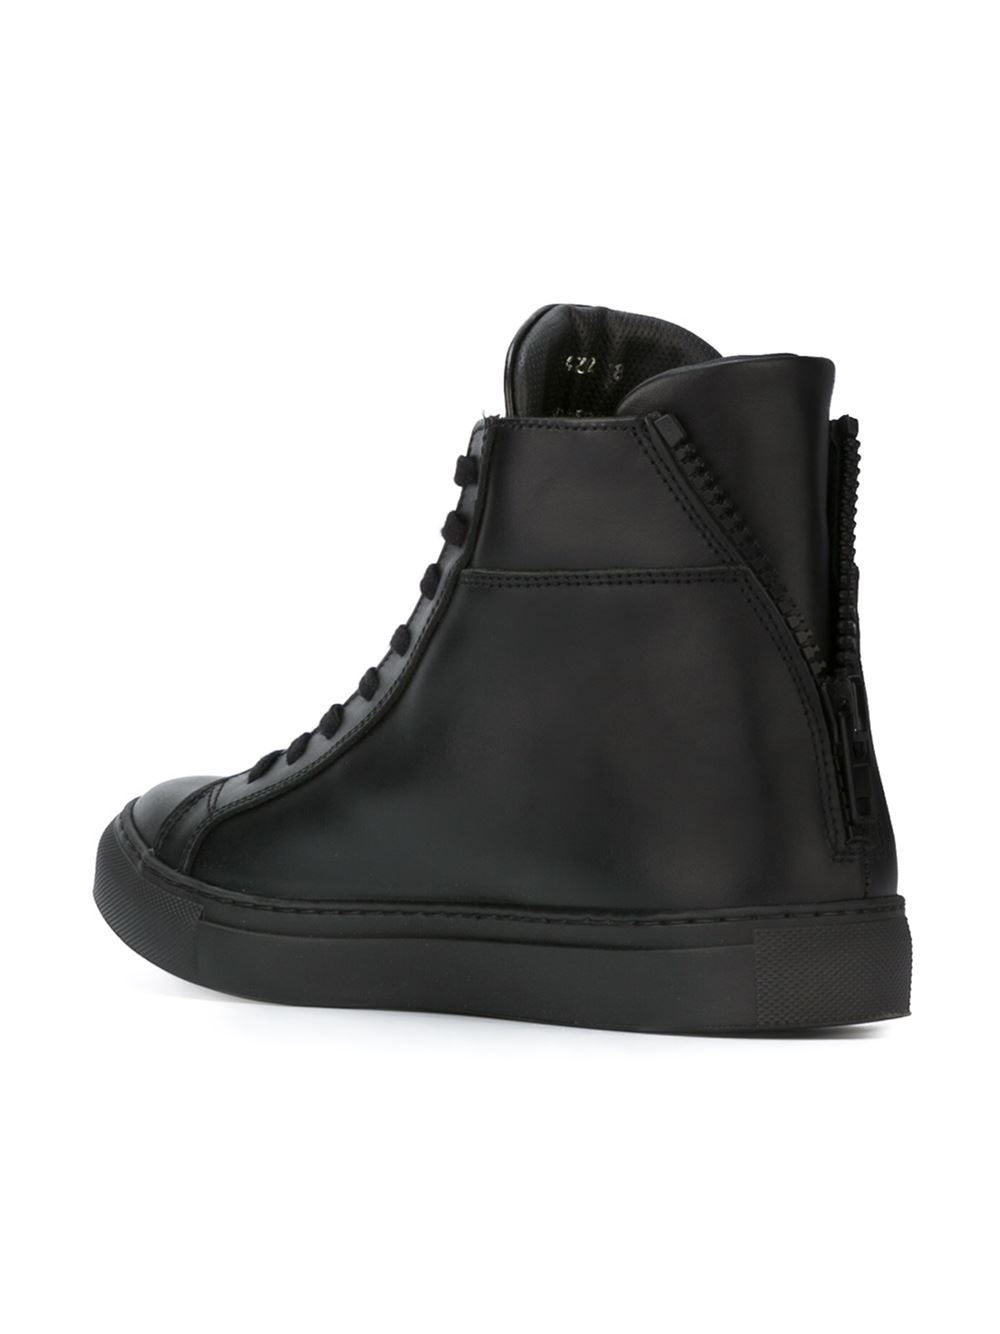 FOOTWEAR - High-tops & sneakers Emporio Armani